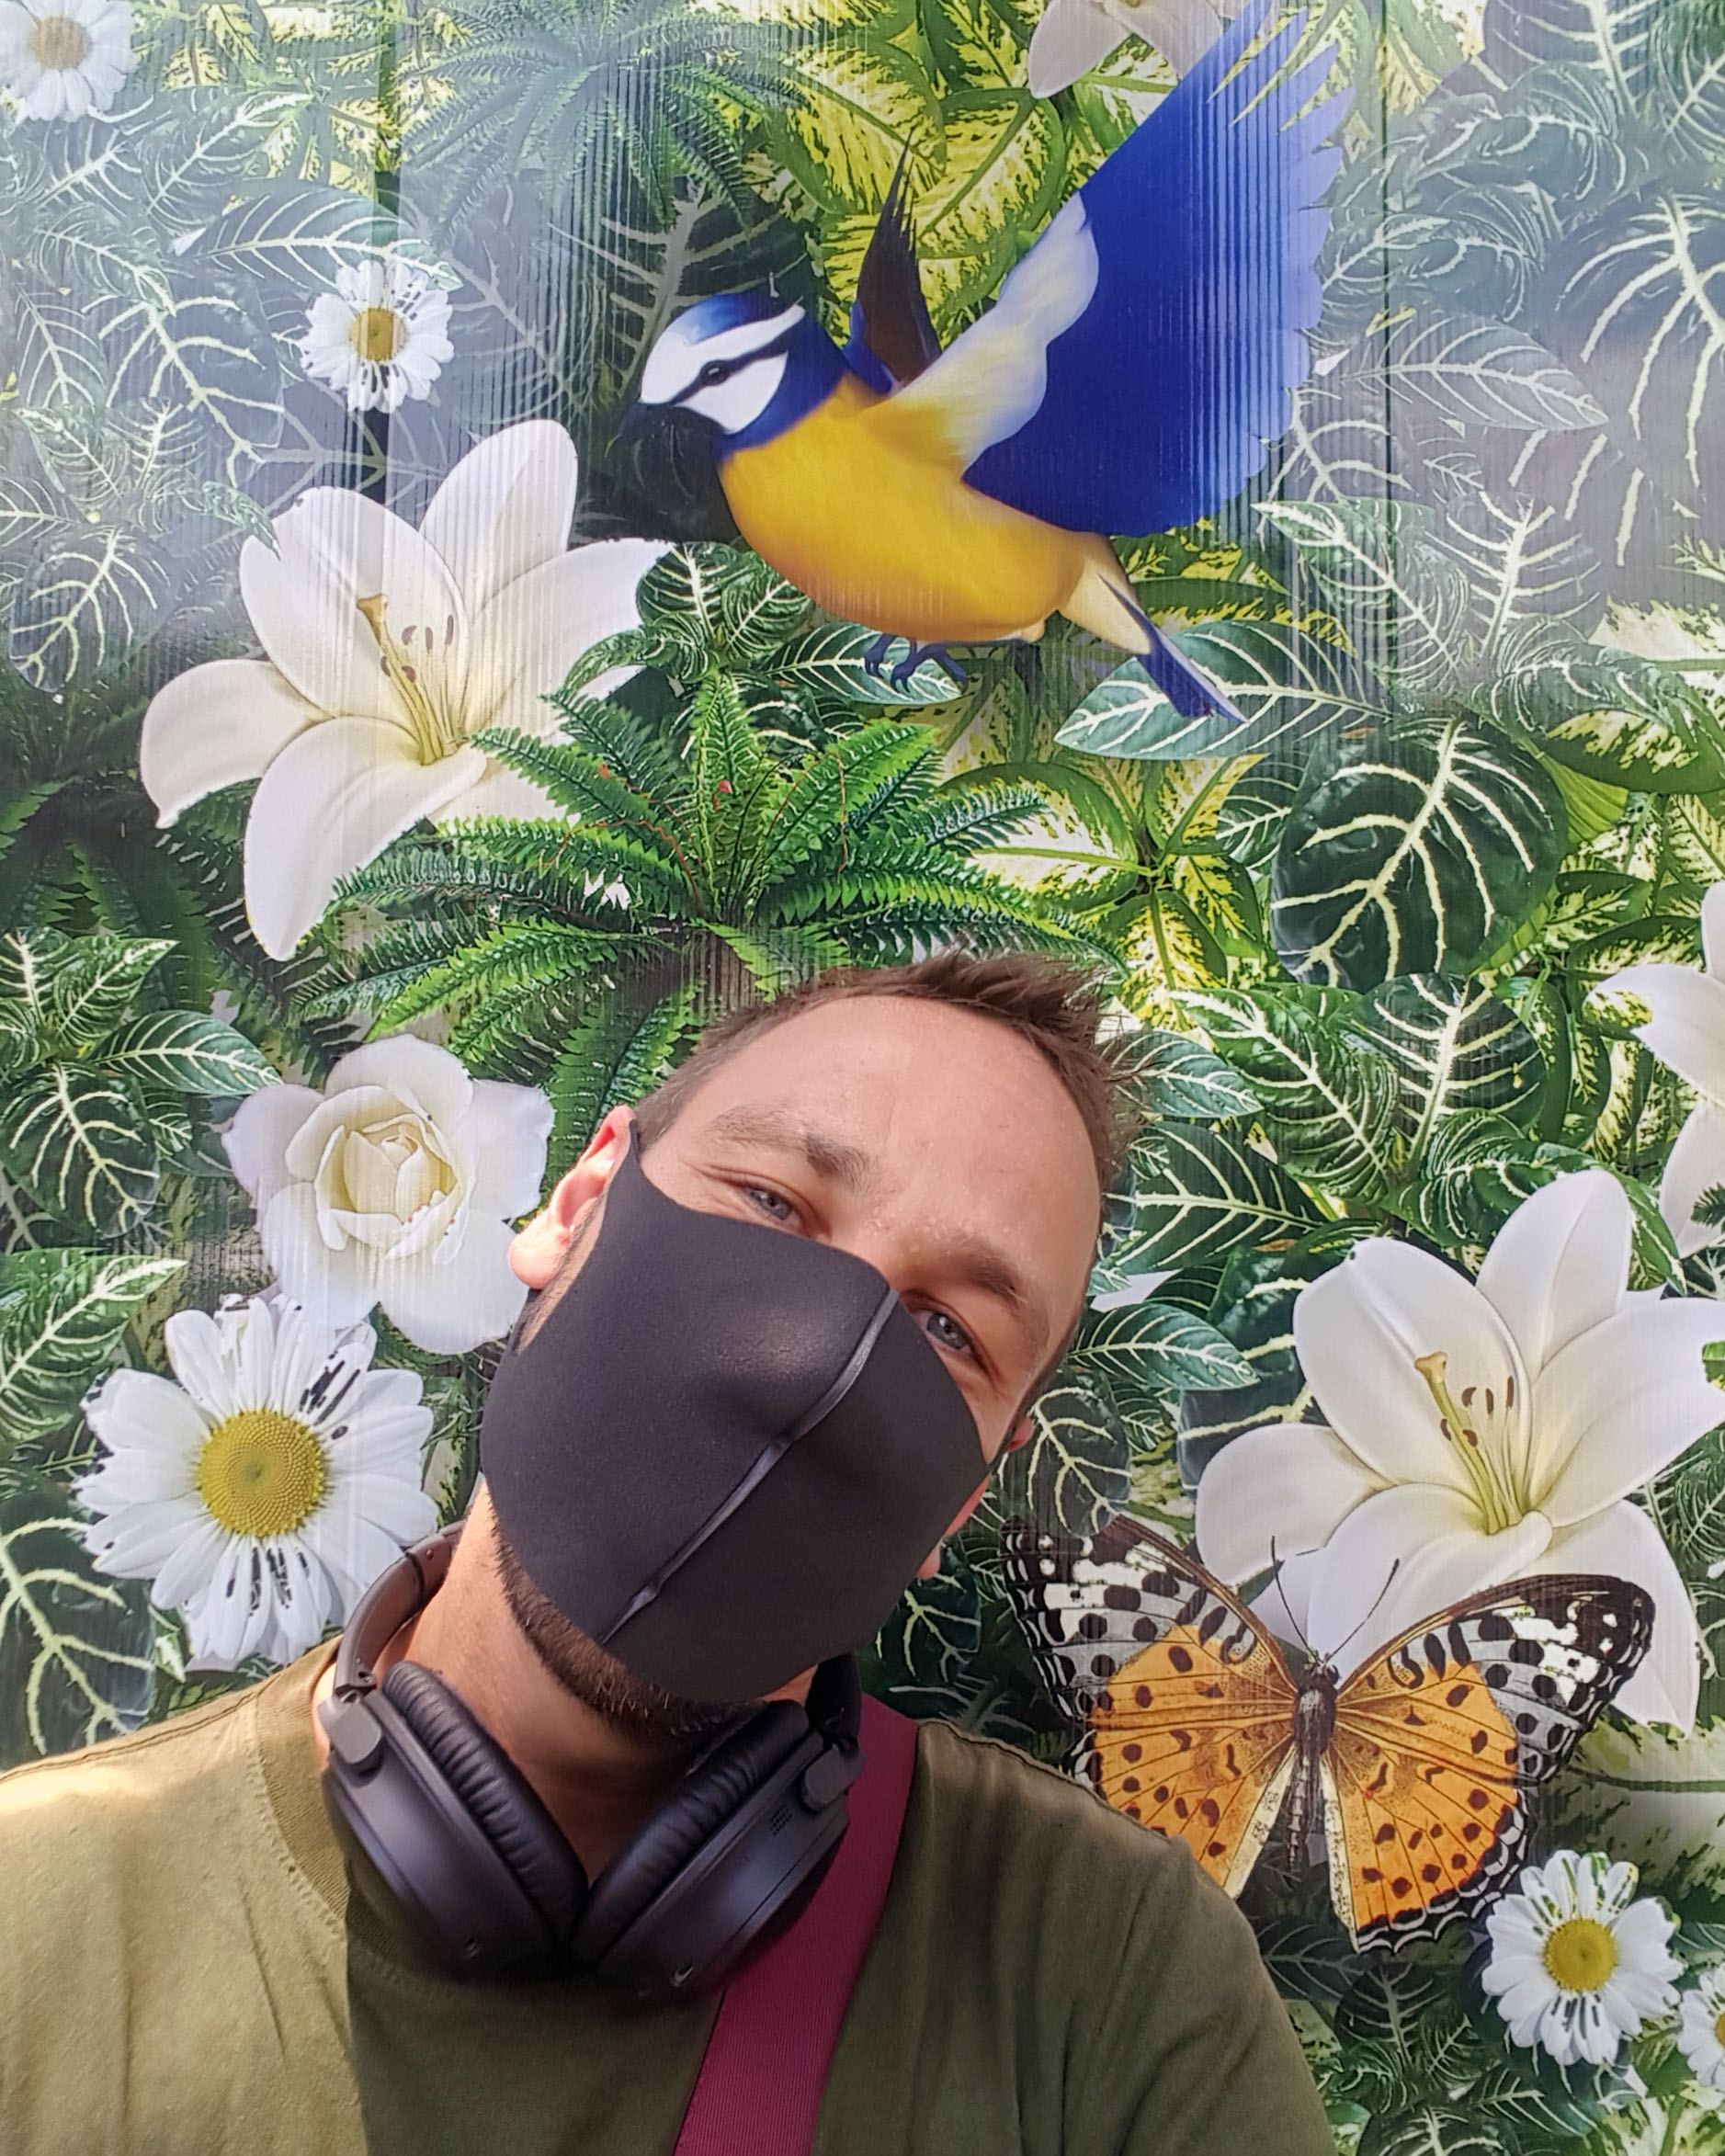 Selfie with mask and tropical background